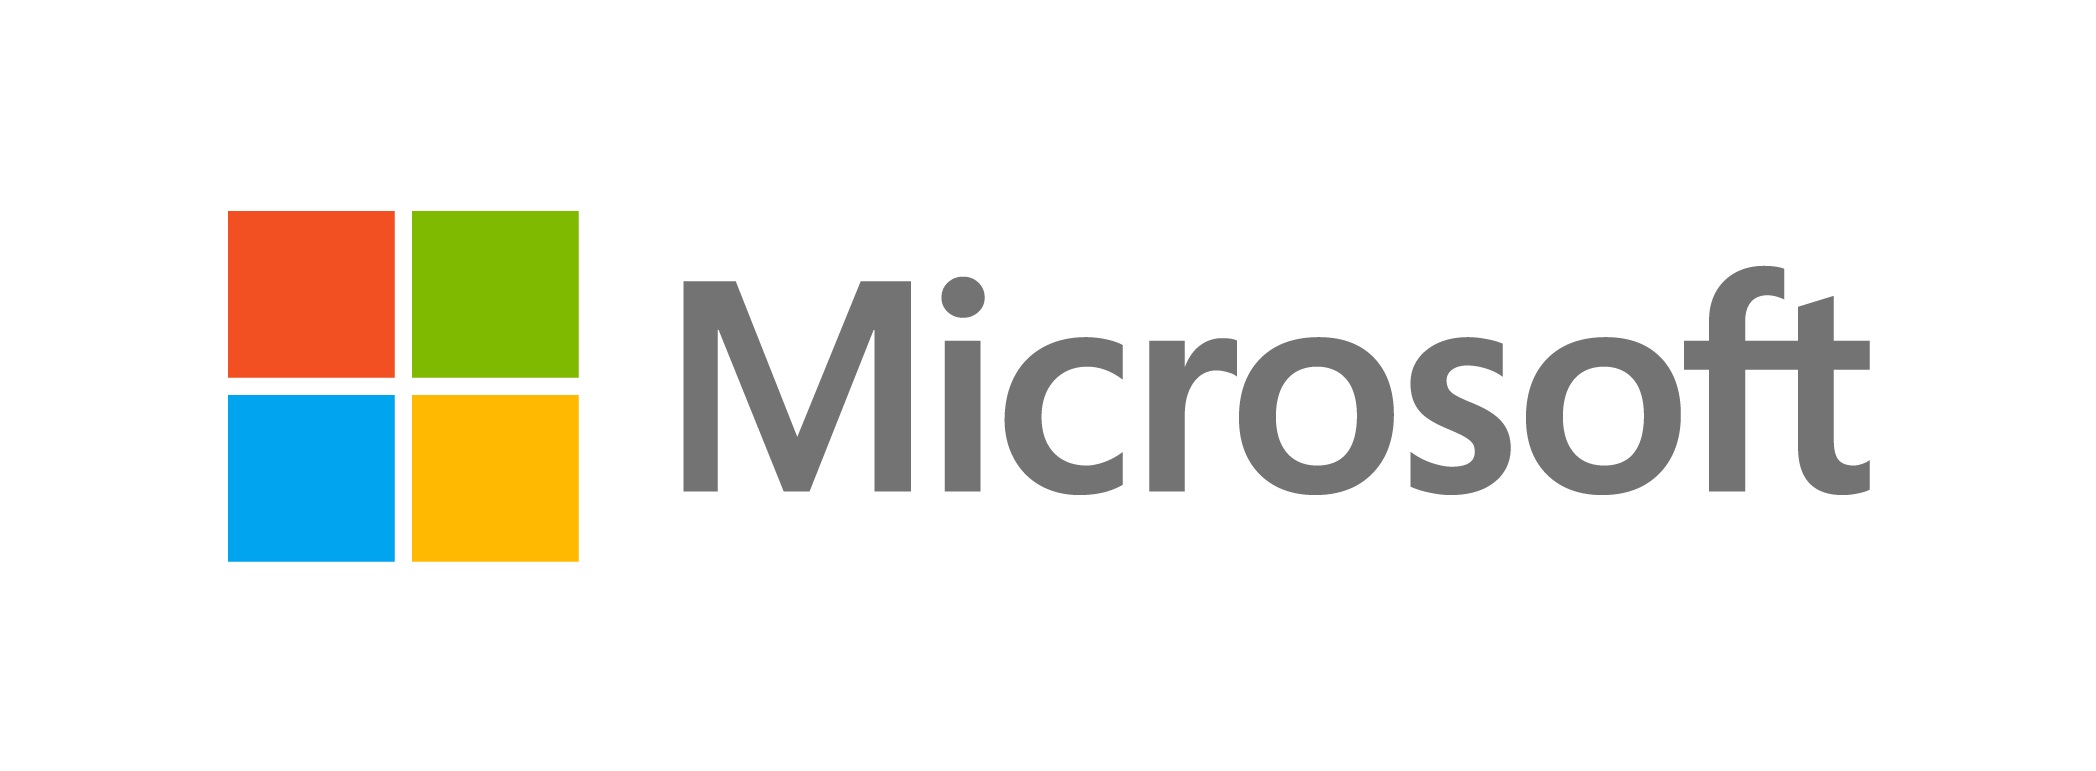 MICROSOFT WINDOWS 10 E/PRISE LTSB IOT POS VALUE